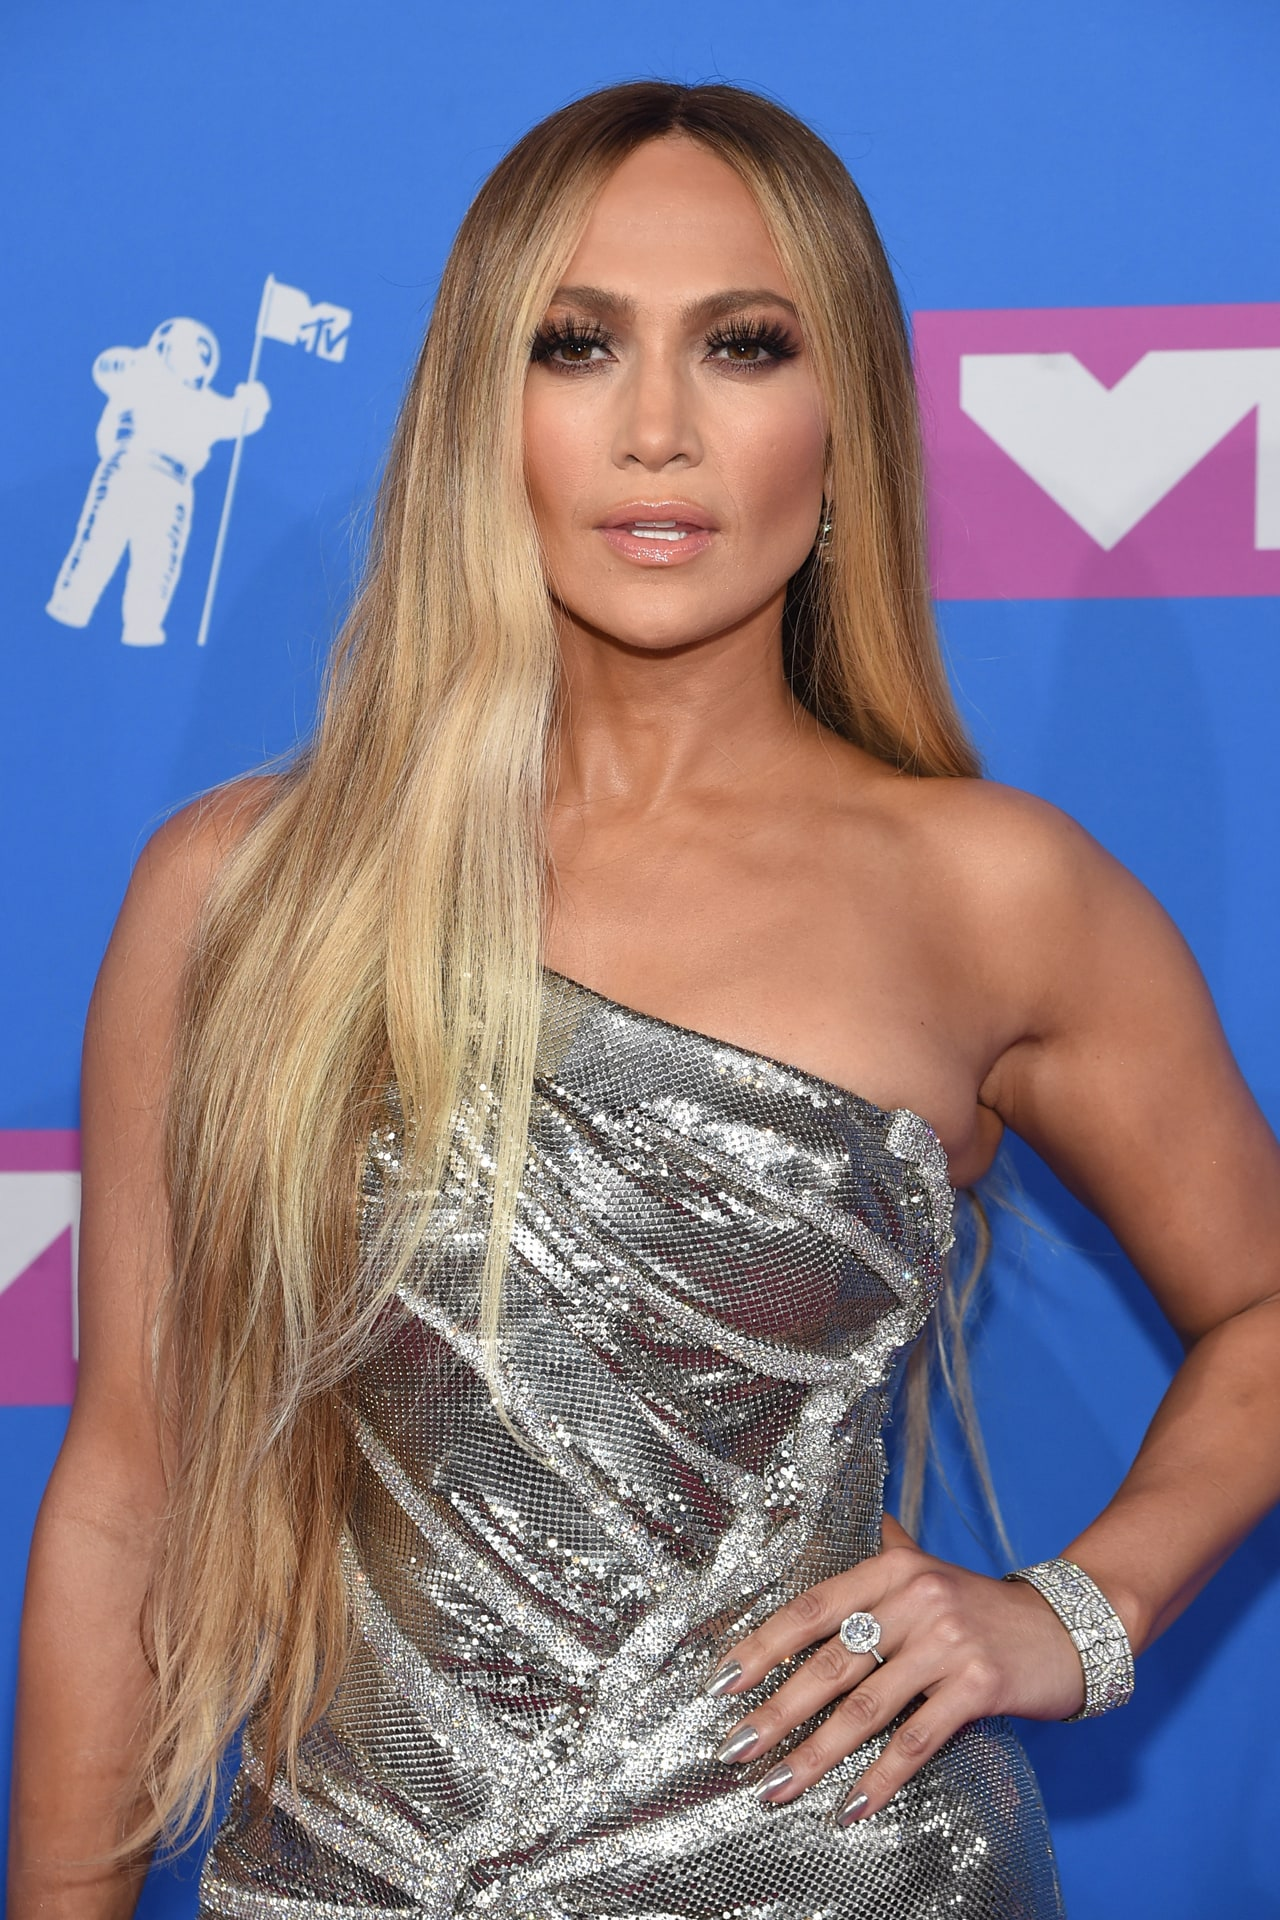 Jennifer Lopez wore over $2 million worth of diamonds to the MTV VMAs 2018